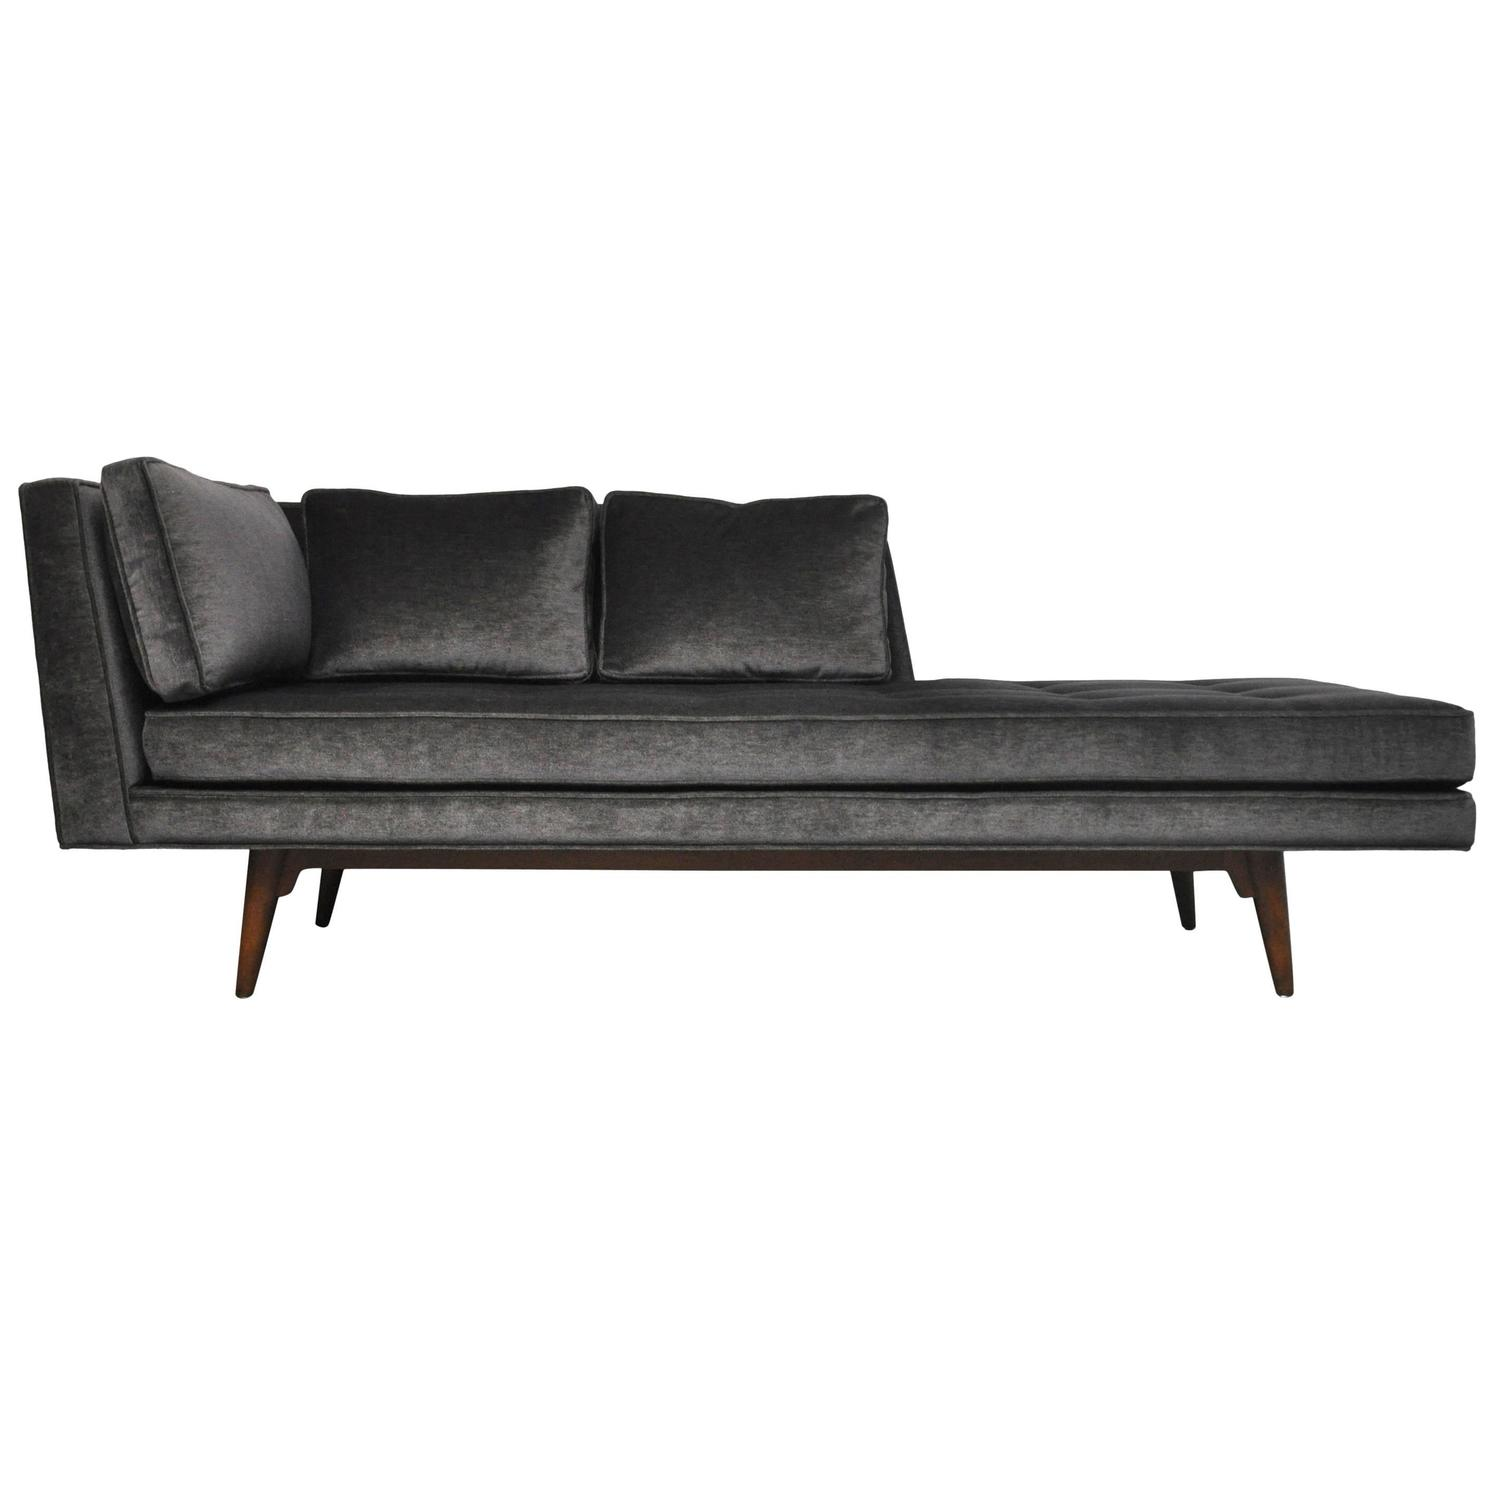 Amazing 30 left arm chaise lounge for Arm chaise lounge